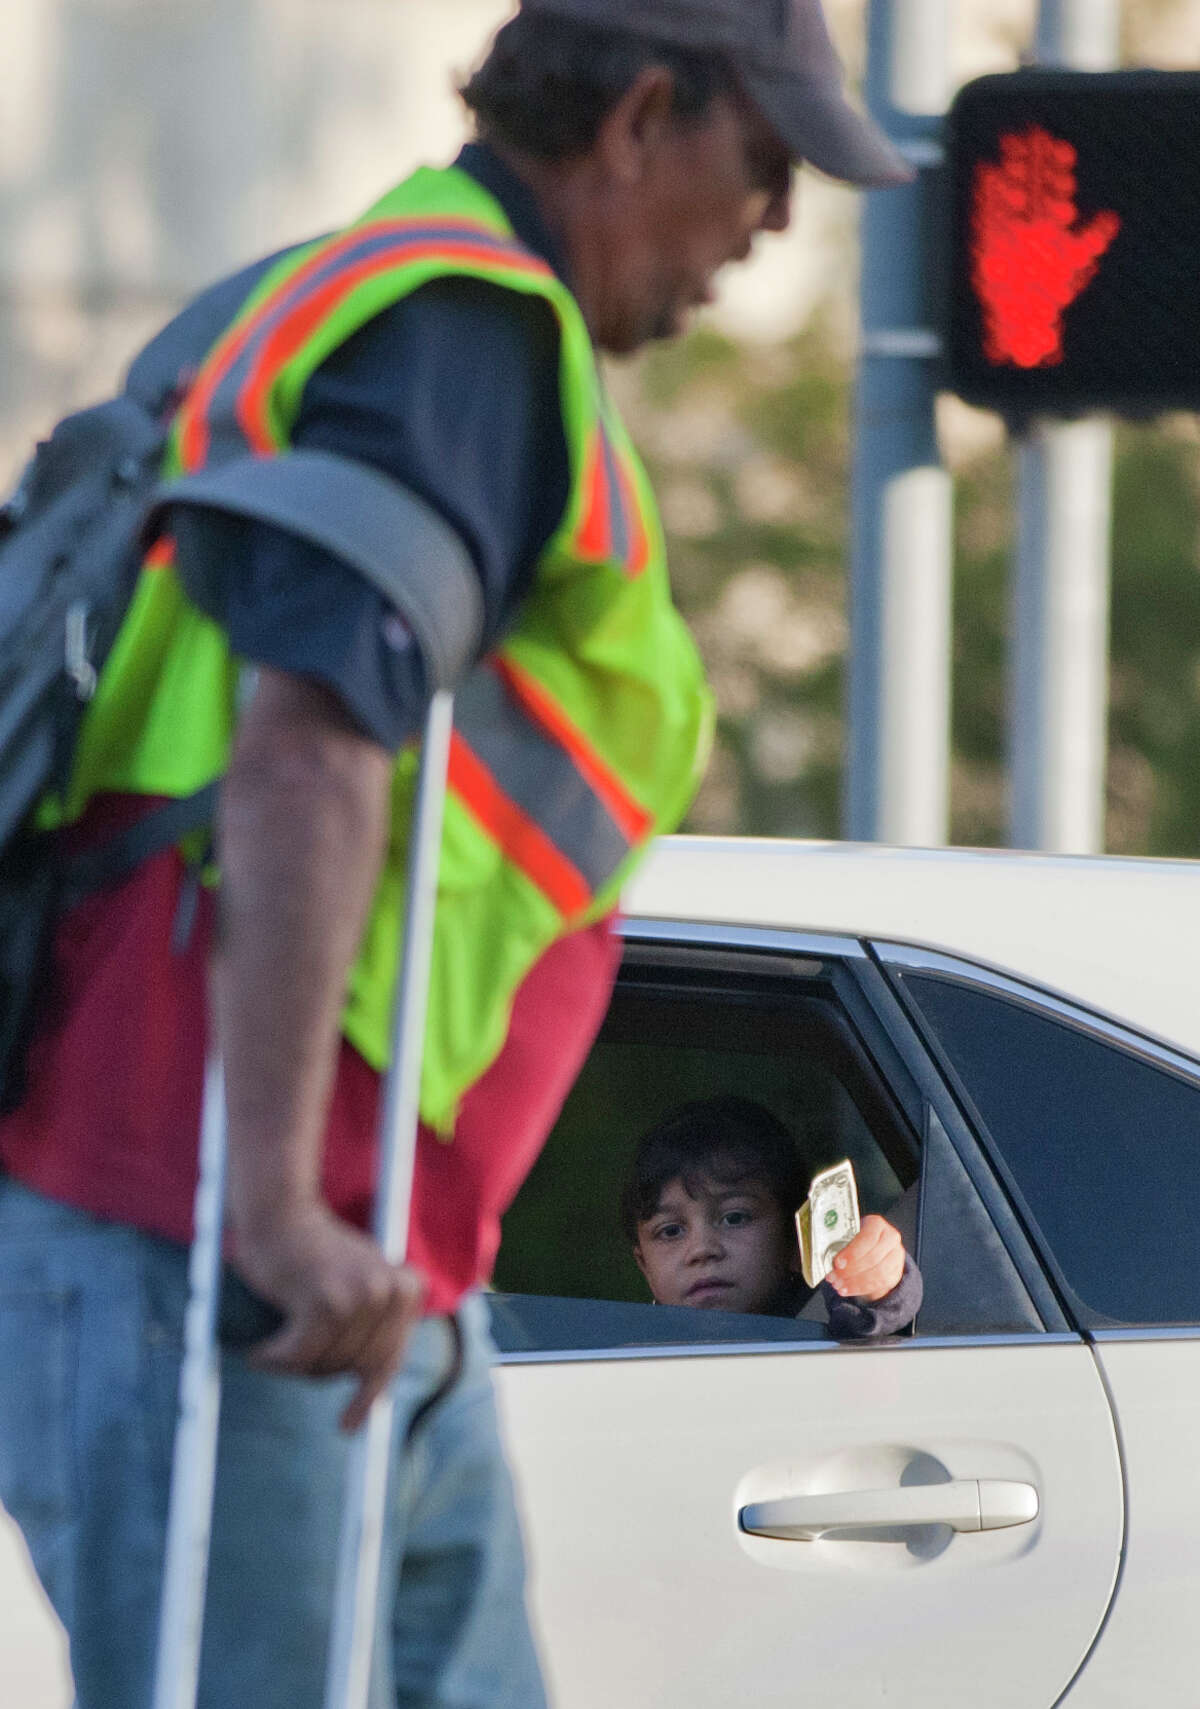 Heading for his regular panhandling spot and not yet paying attention, Carbonneau misses out on a few dollars from a passing car on Woodway at the Loop.